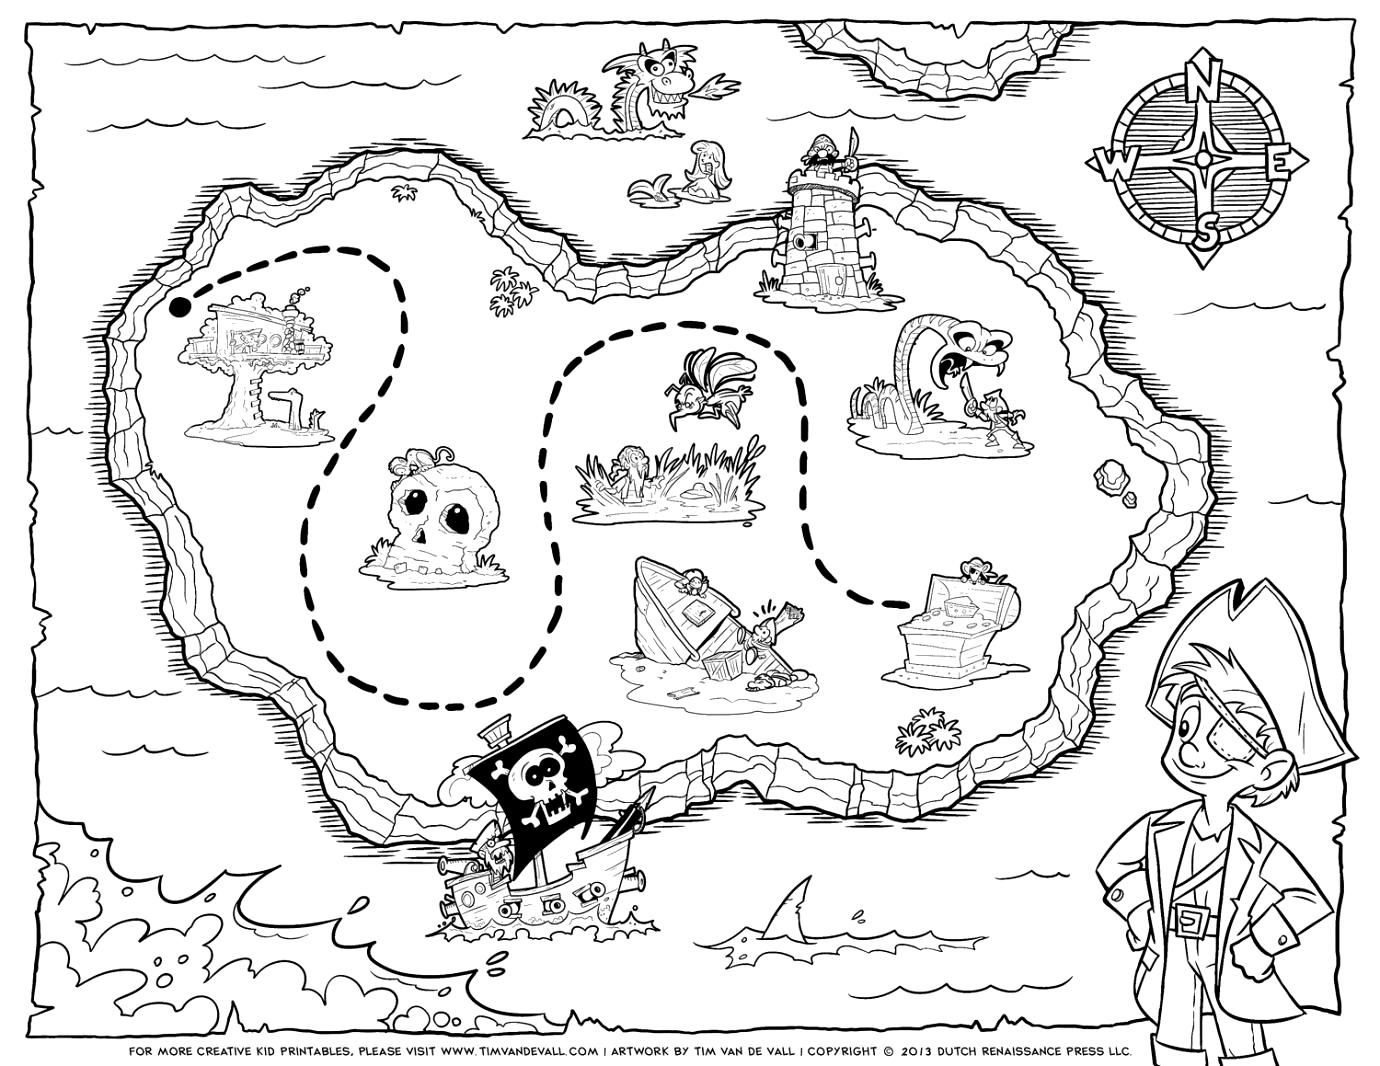 pirate map coloring page pirate treasure map coloring pages free printable earth pirate map coloring page